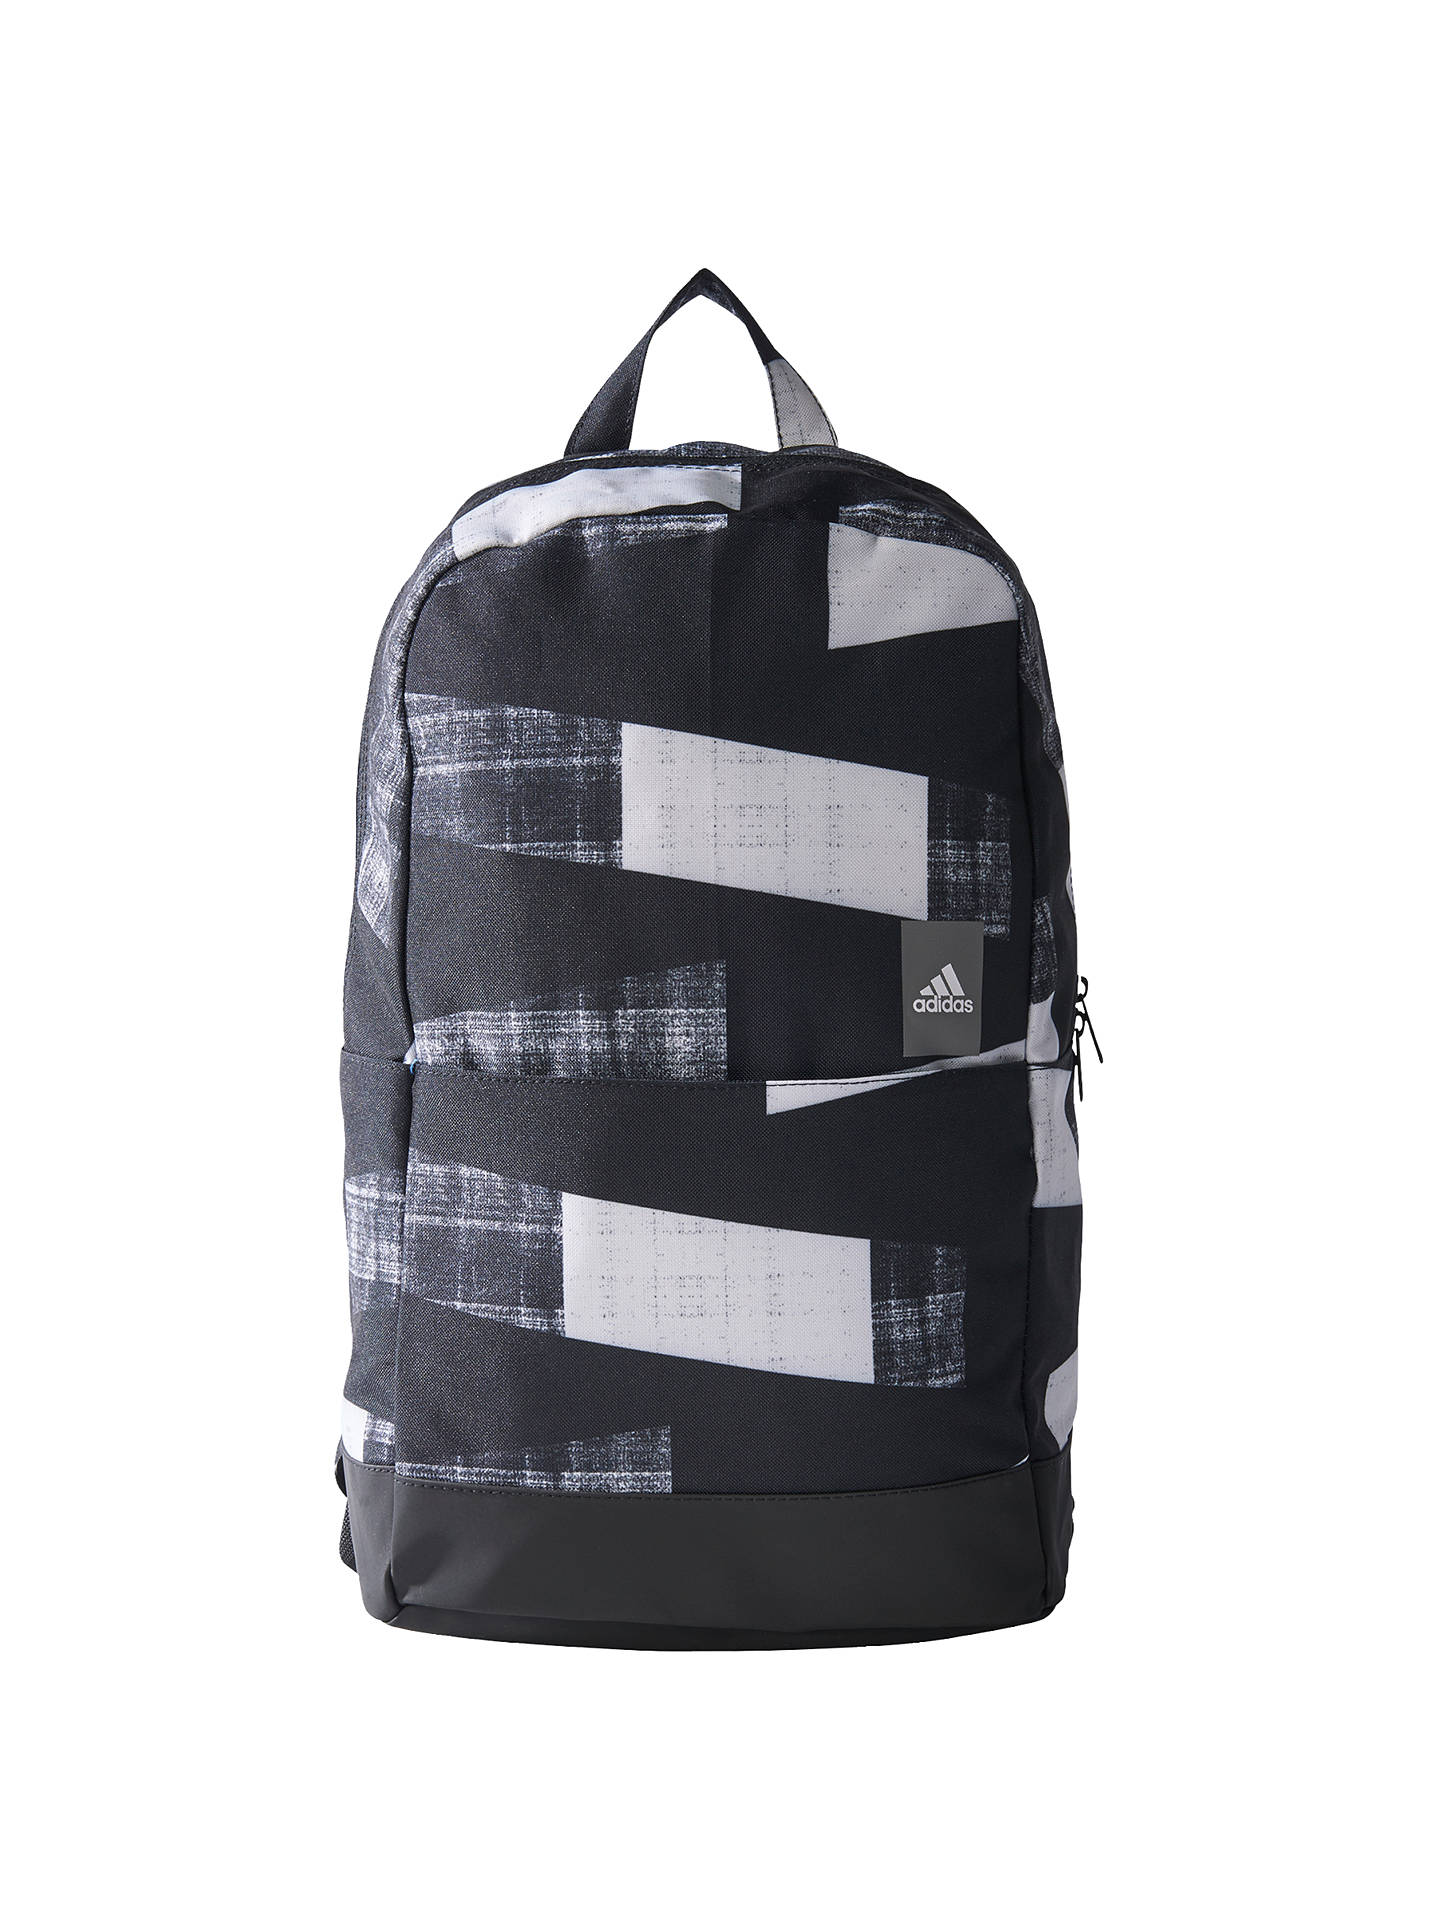 Buyadidas Classic Graphic Backpack 0b71d6c248523